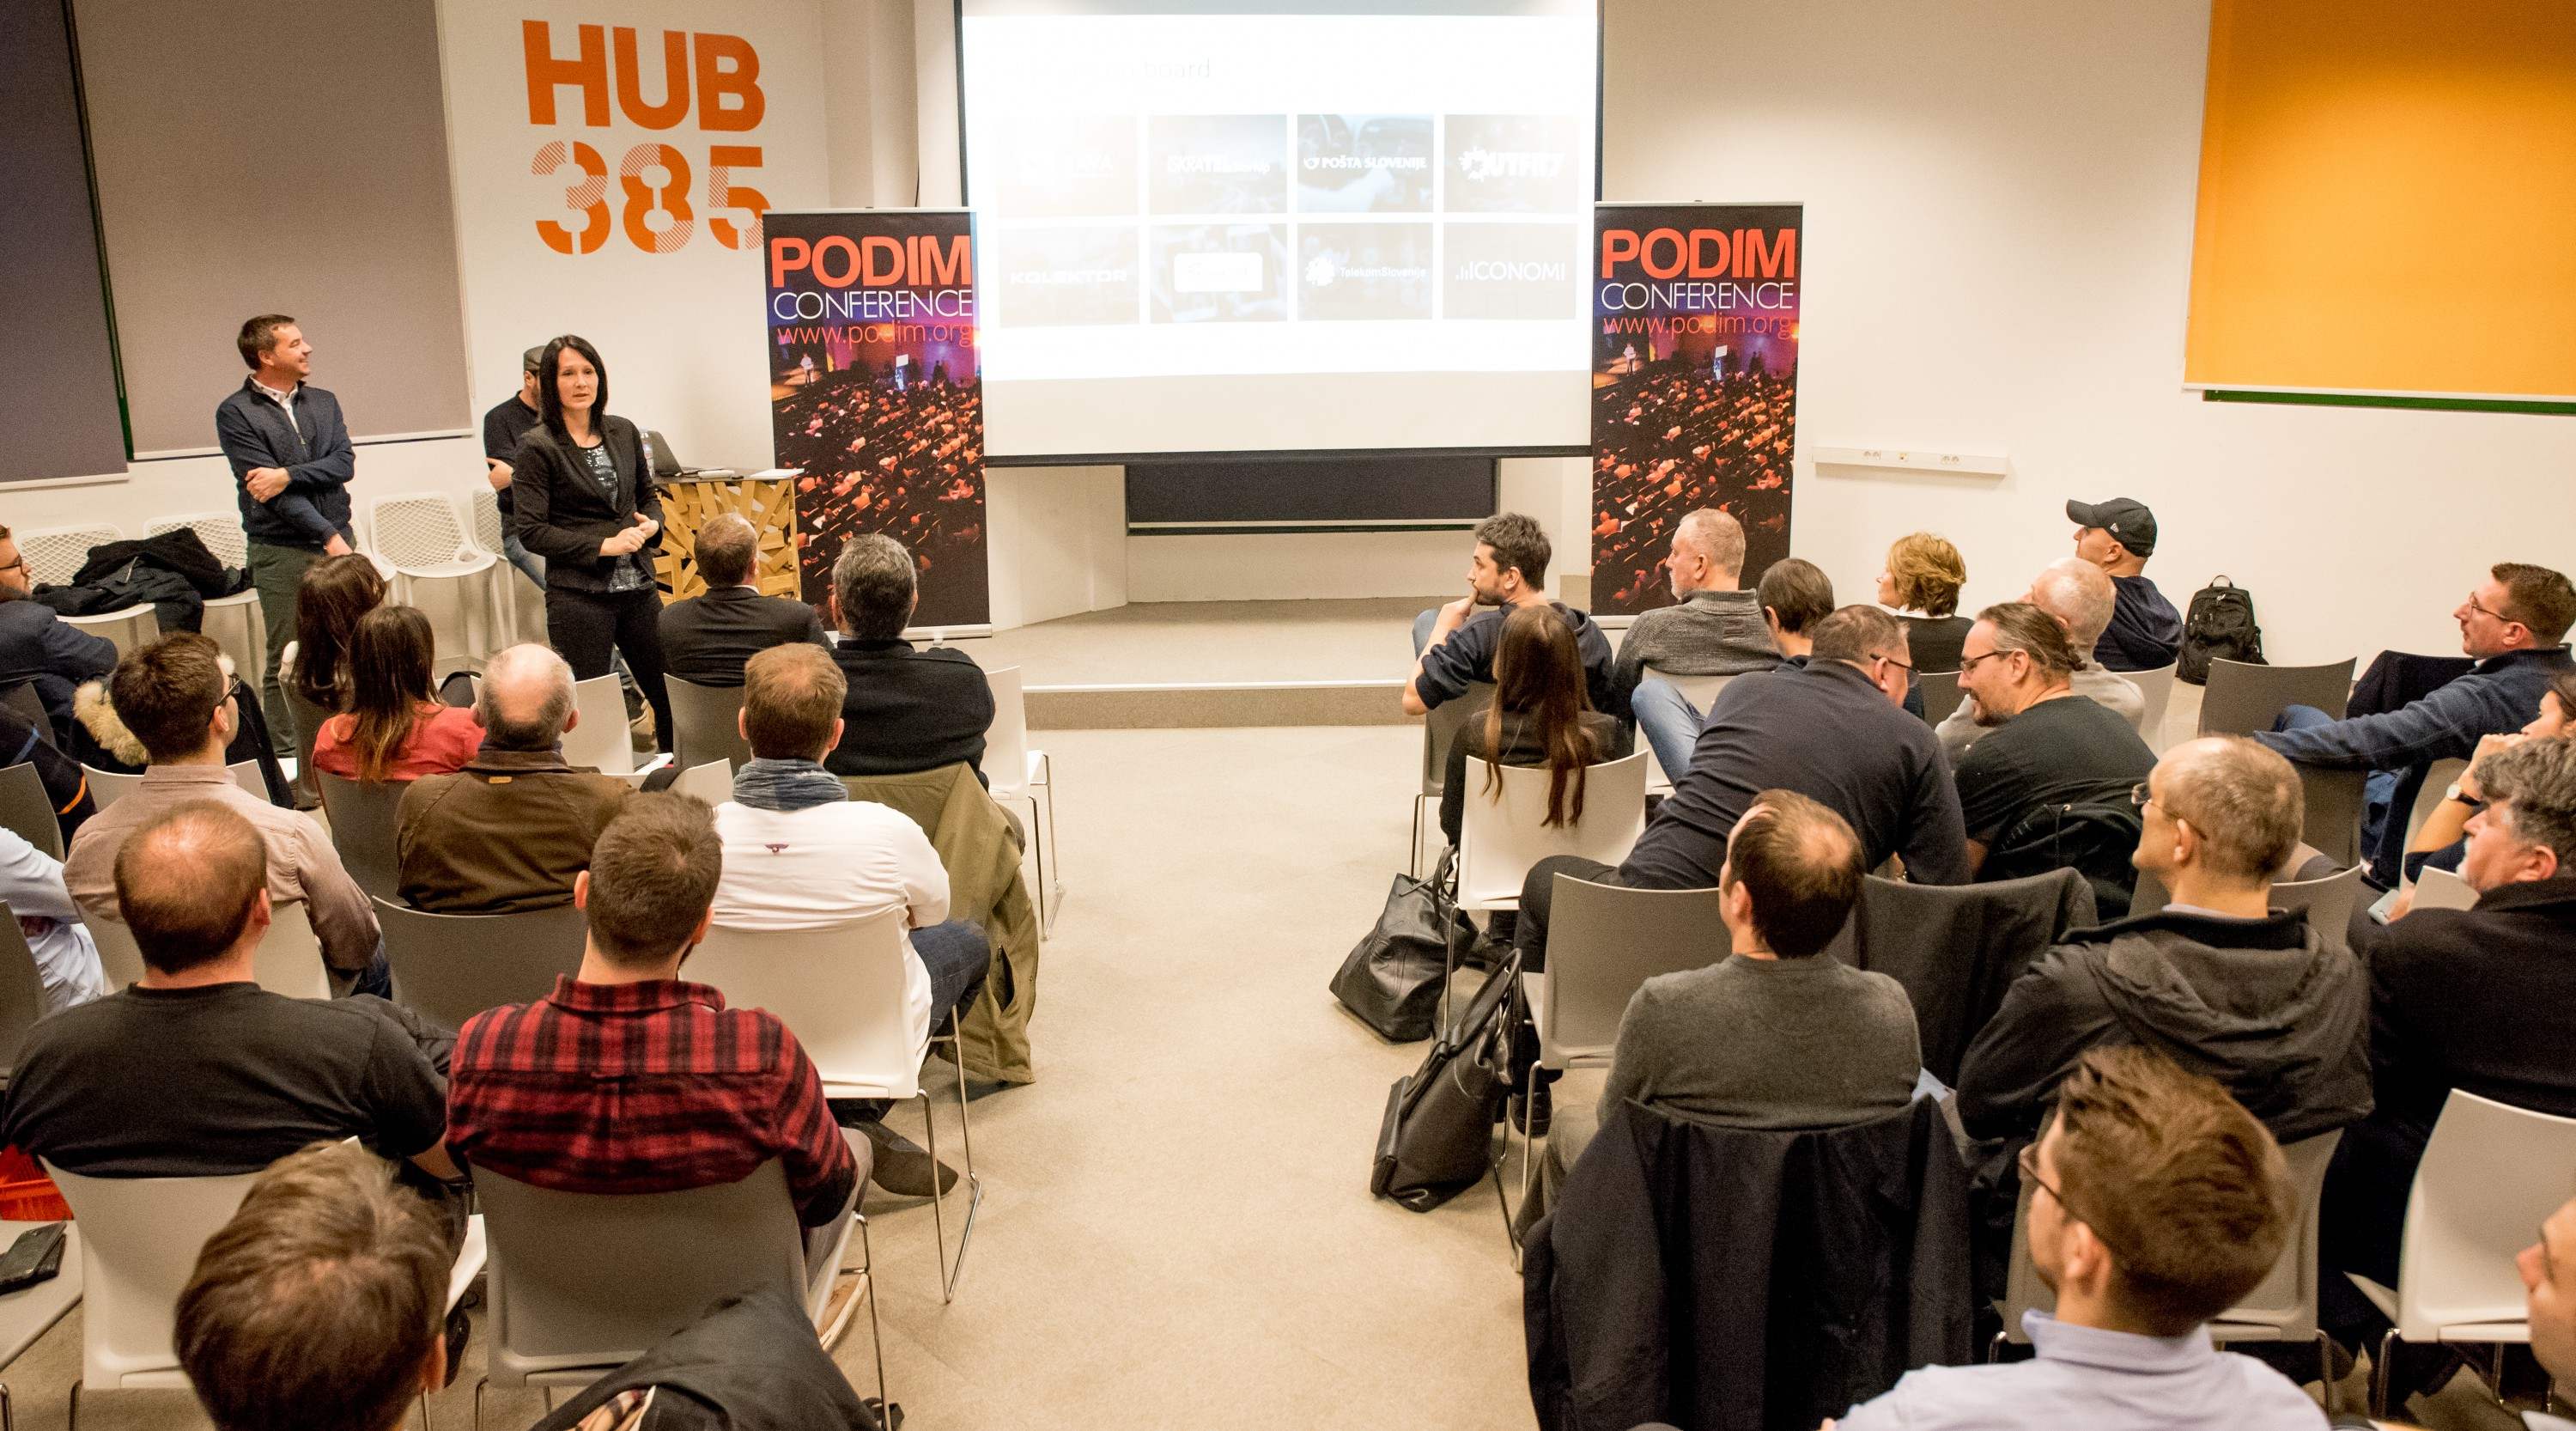 PODIM: Roadshow-Pitch in Zagreb